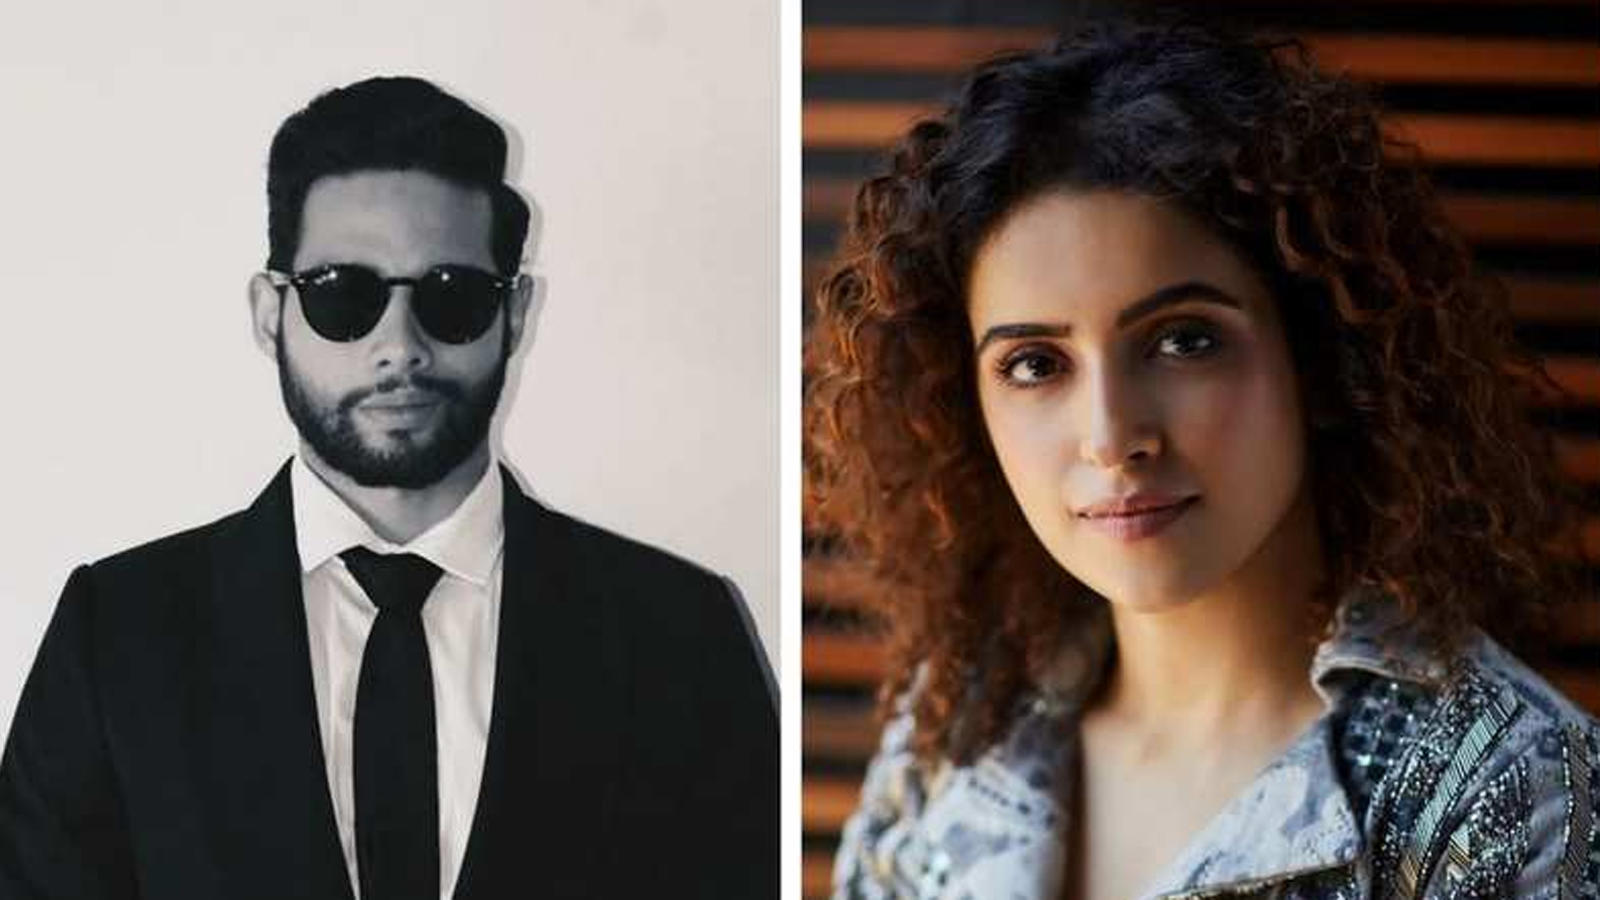 Siddhant Chaturvedi and Sanya Malhotra to lend voice in Hindi version of 'Men in Black: International'